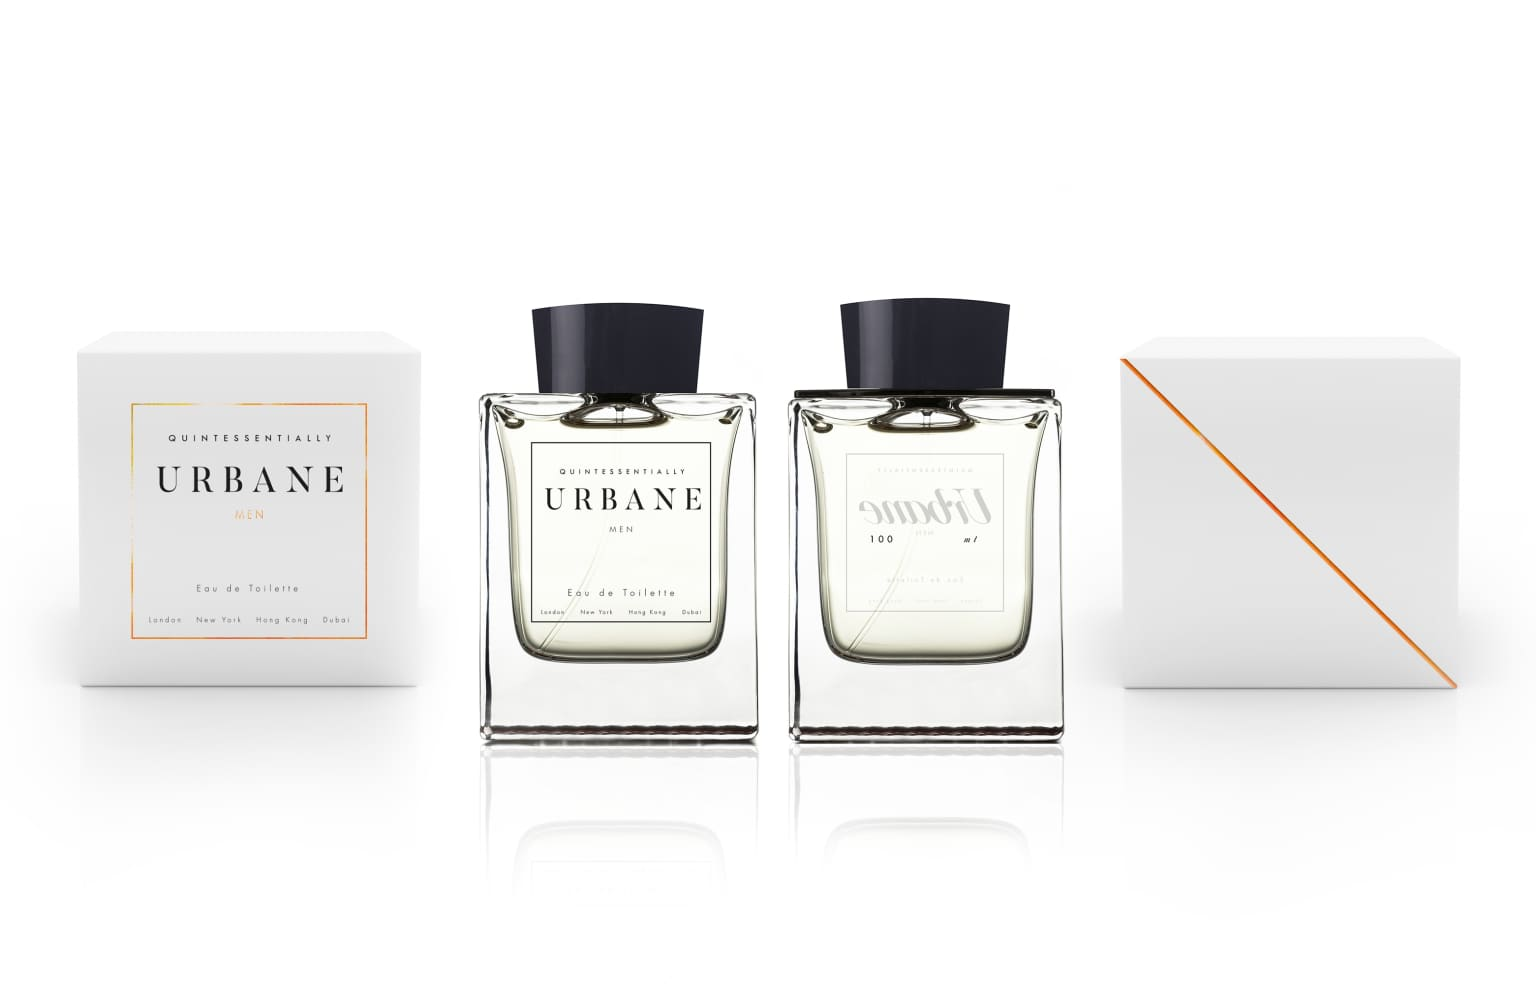 Urbane - Perfume branding, graphics and packaging design